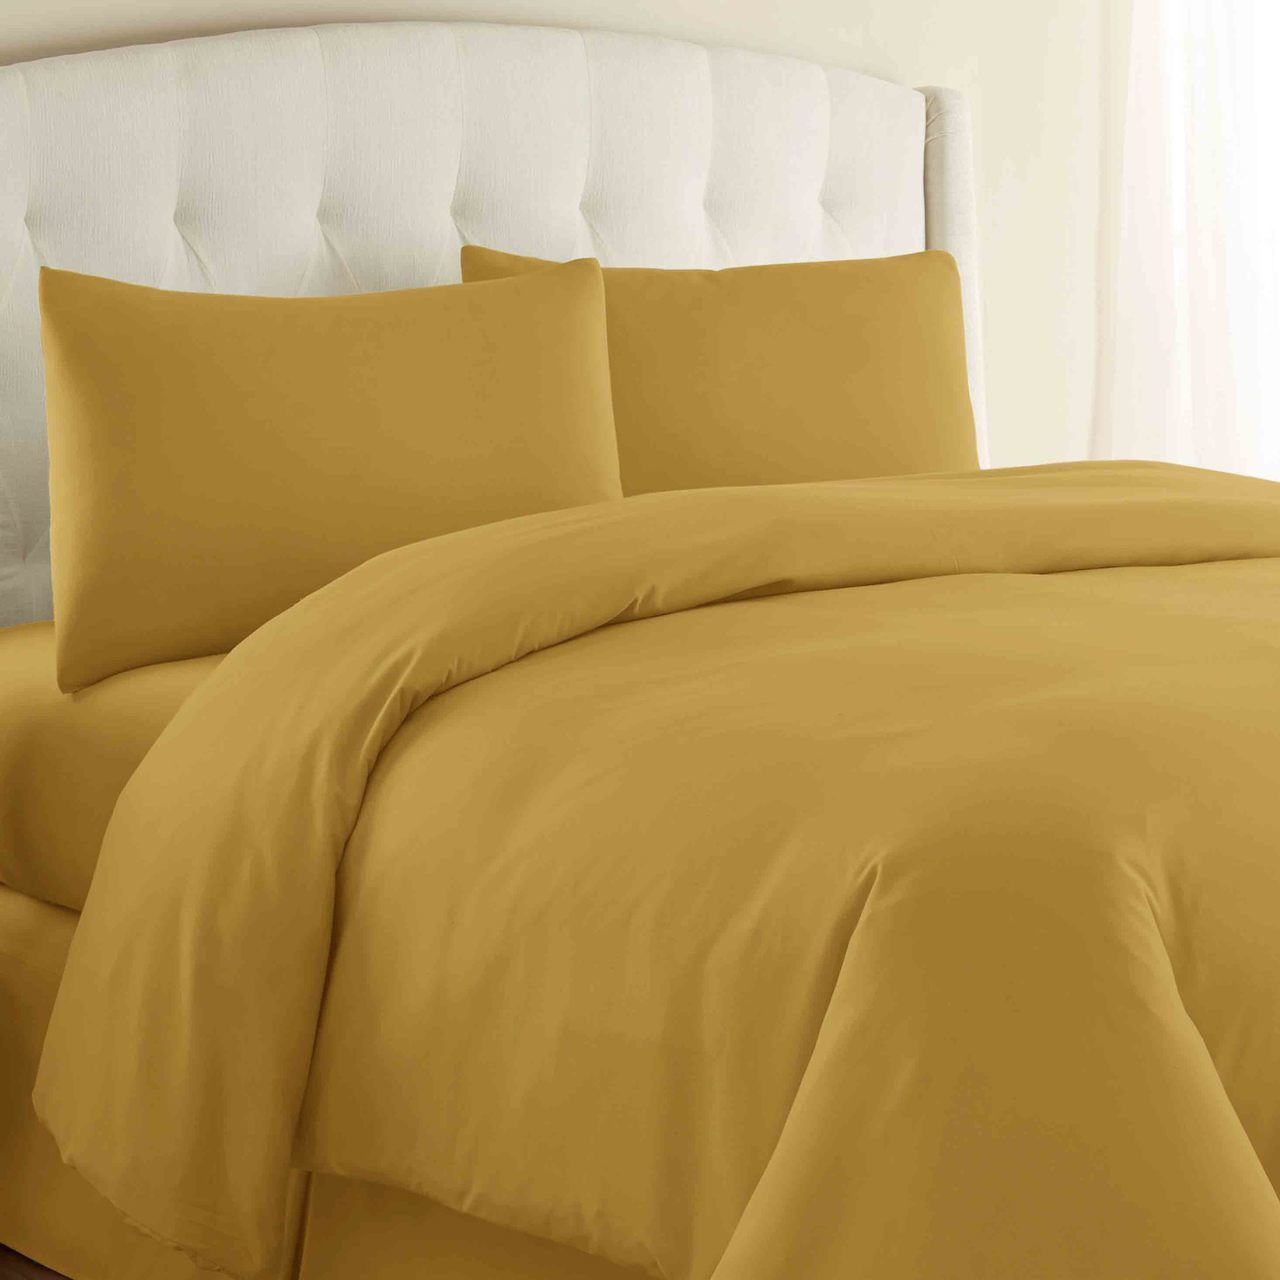 Fitted sheet 100% Cotton Satin (Plain) single Bed sheet with one Pillow Cover AIT-1003